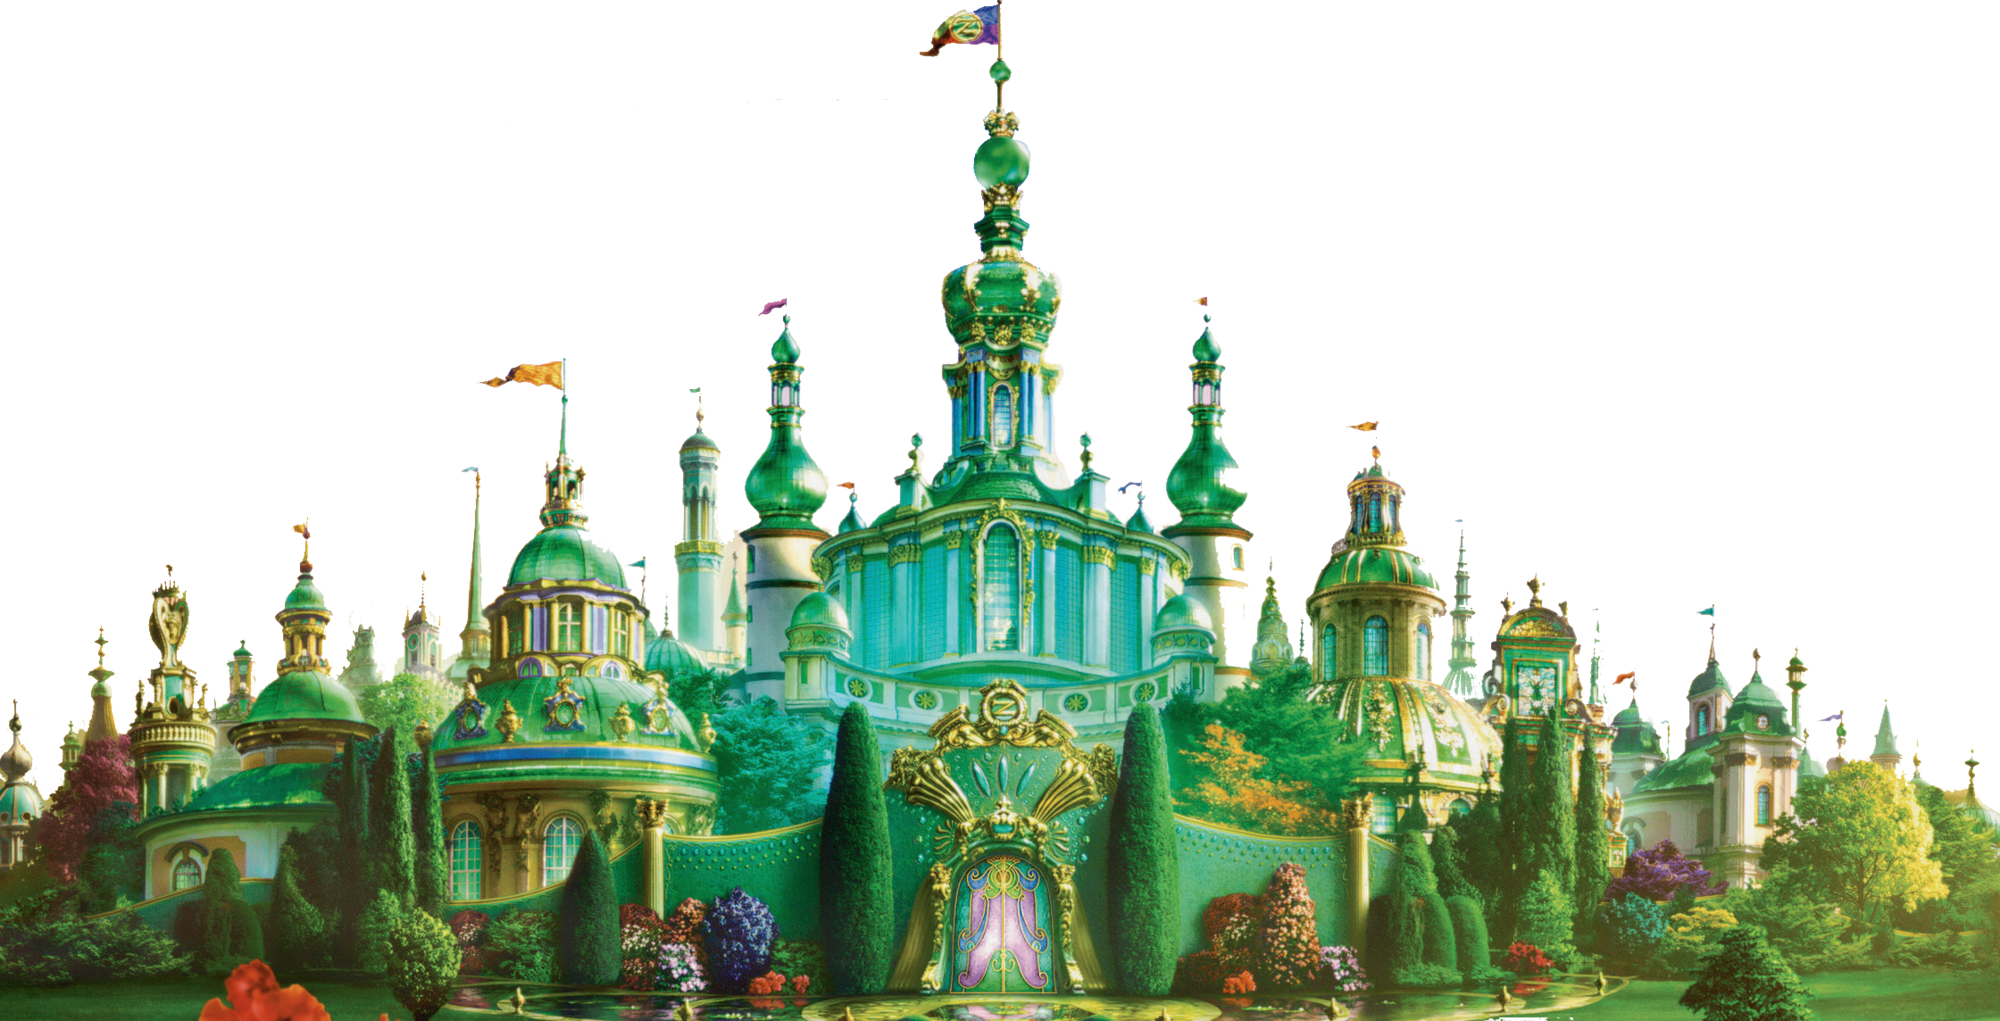 Transparent castle palace. Royal of oz wiki